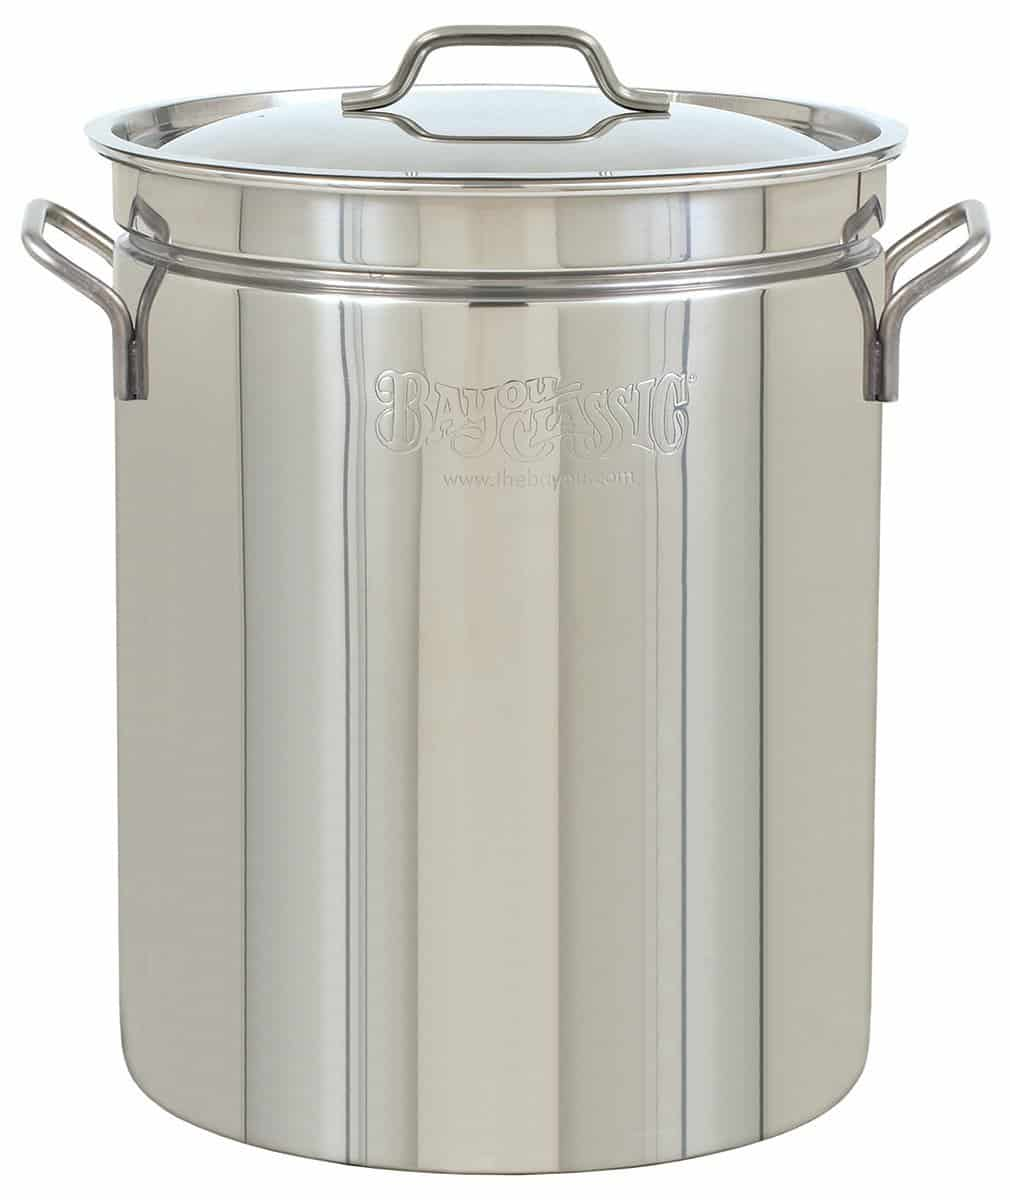 huge stainless steel stockpot